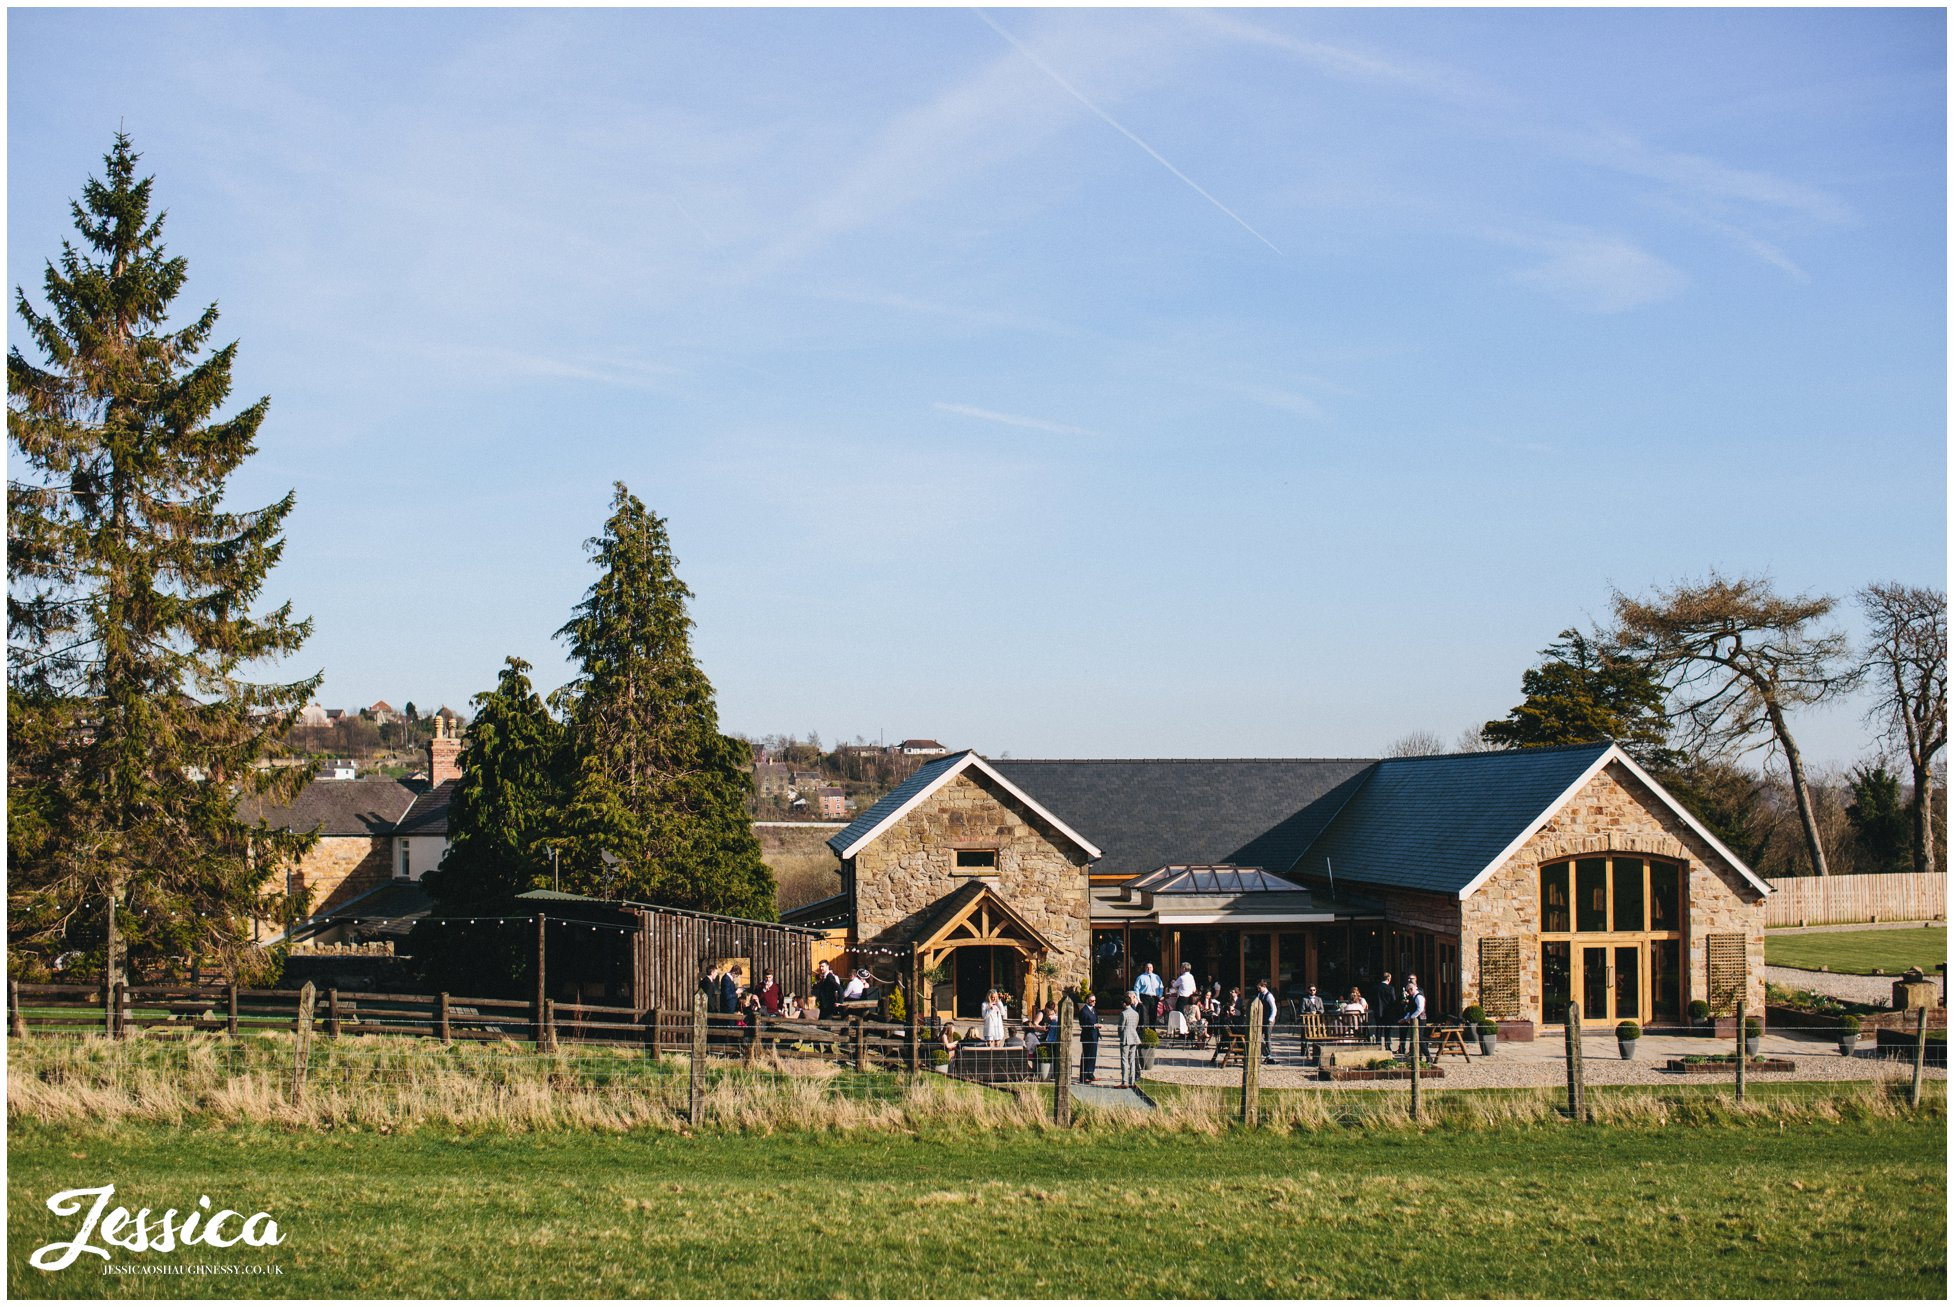 a view of tower hill barns at a sunny north wales wedding